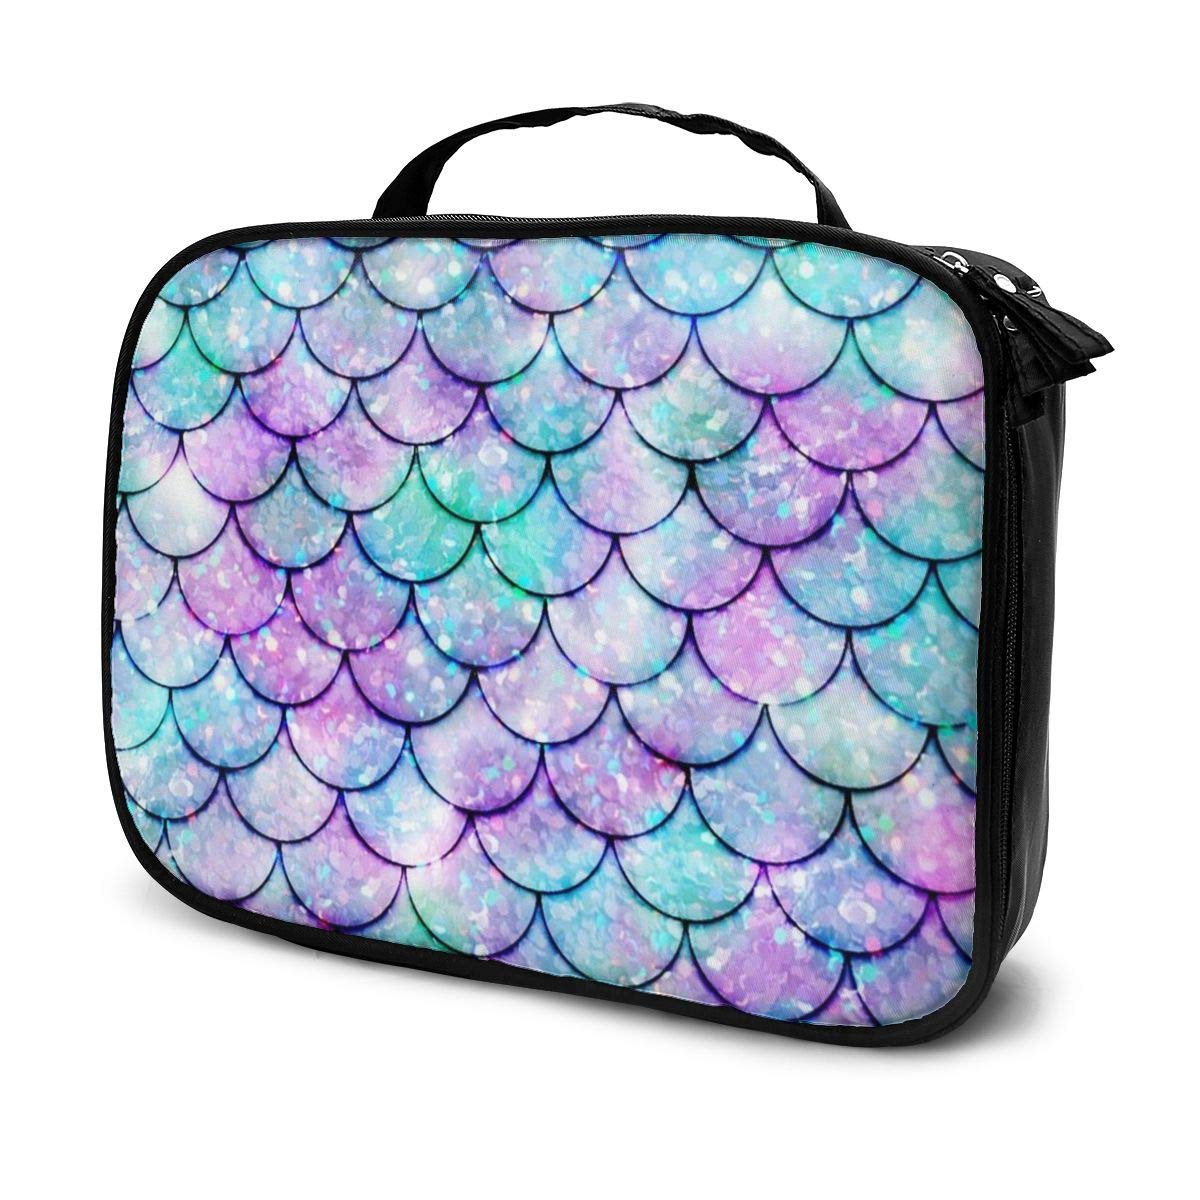 YongColer Beautiful Sparkling Mermaid Scales Toiletry Bag Holder Portable Gift for Girls Women Large Capacity Travel Makeup Train Case for Cosmetics Digital Accessories Fashion Travel Bag